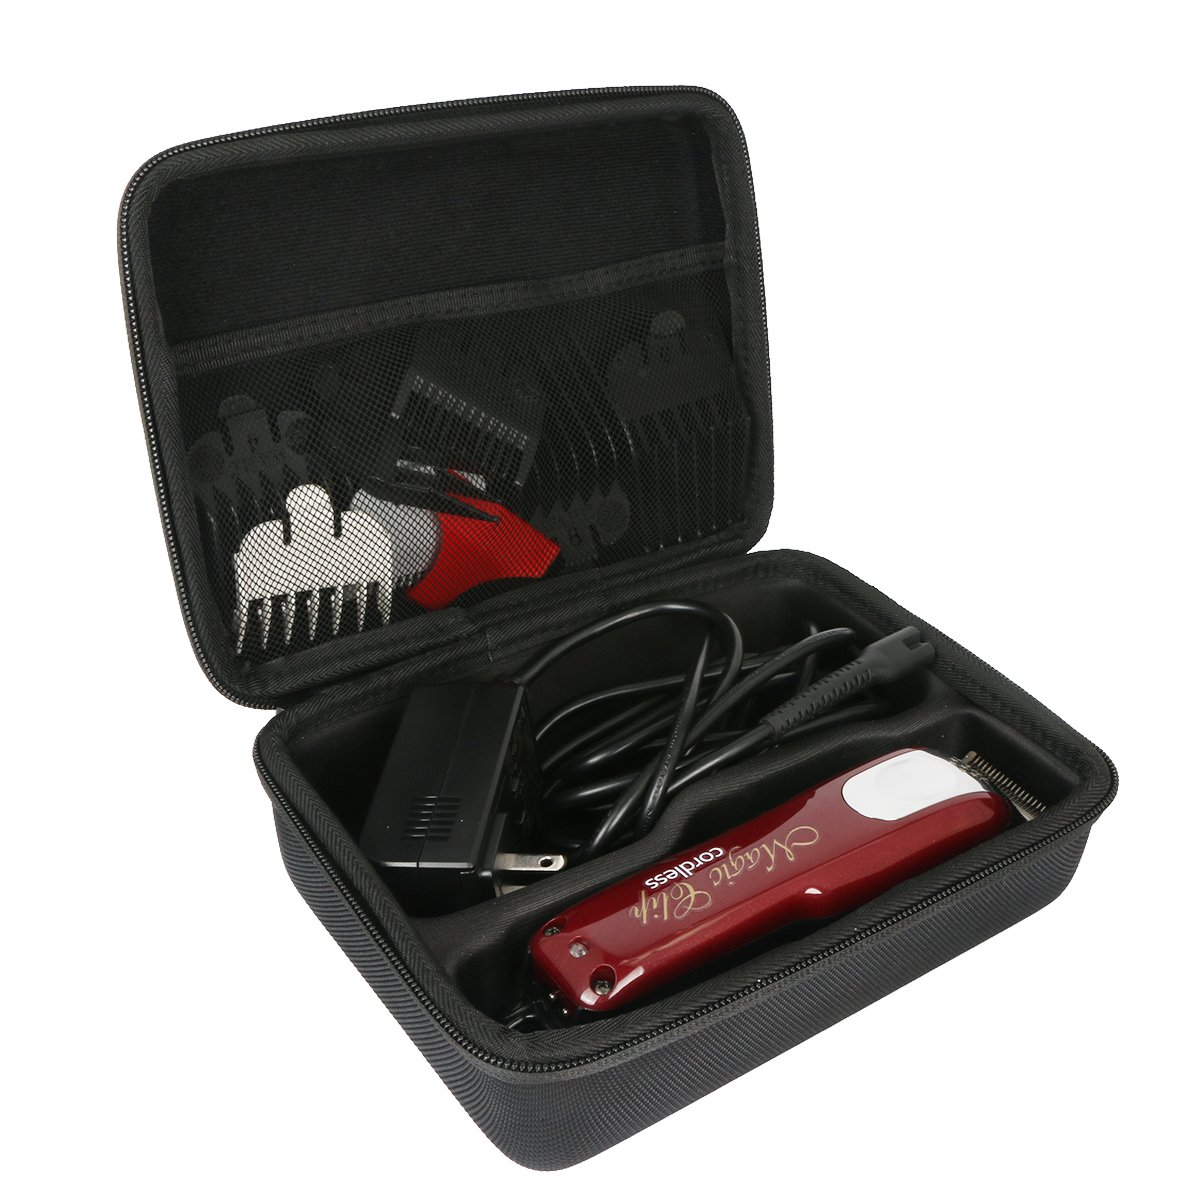 Hrad Travel Case for Wahl Professional 5-Star Cord/Cordless Magic Clip #8148 – Great for Barbers and Stylists by Khanka